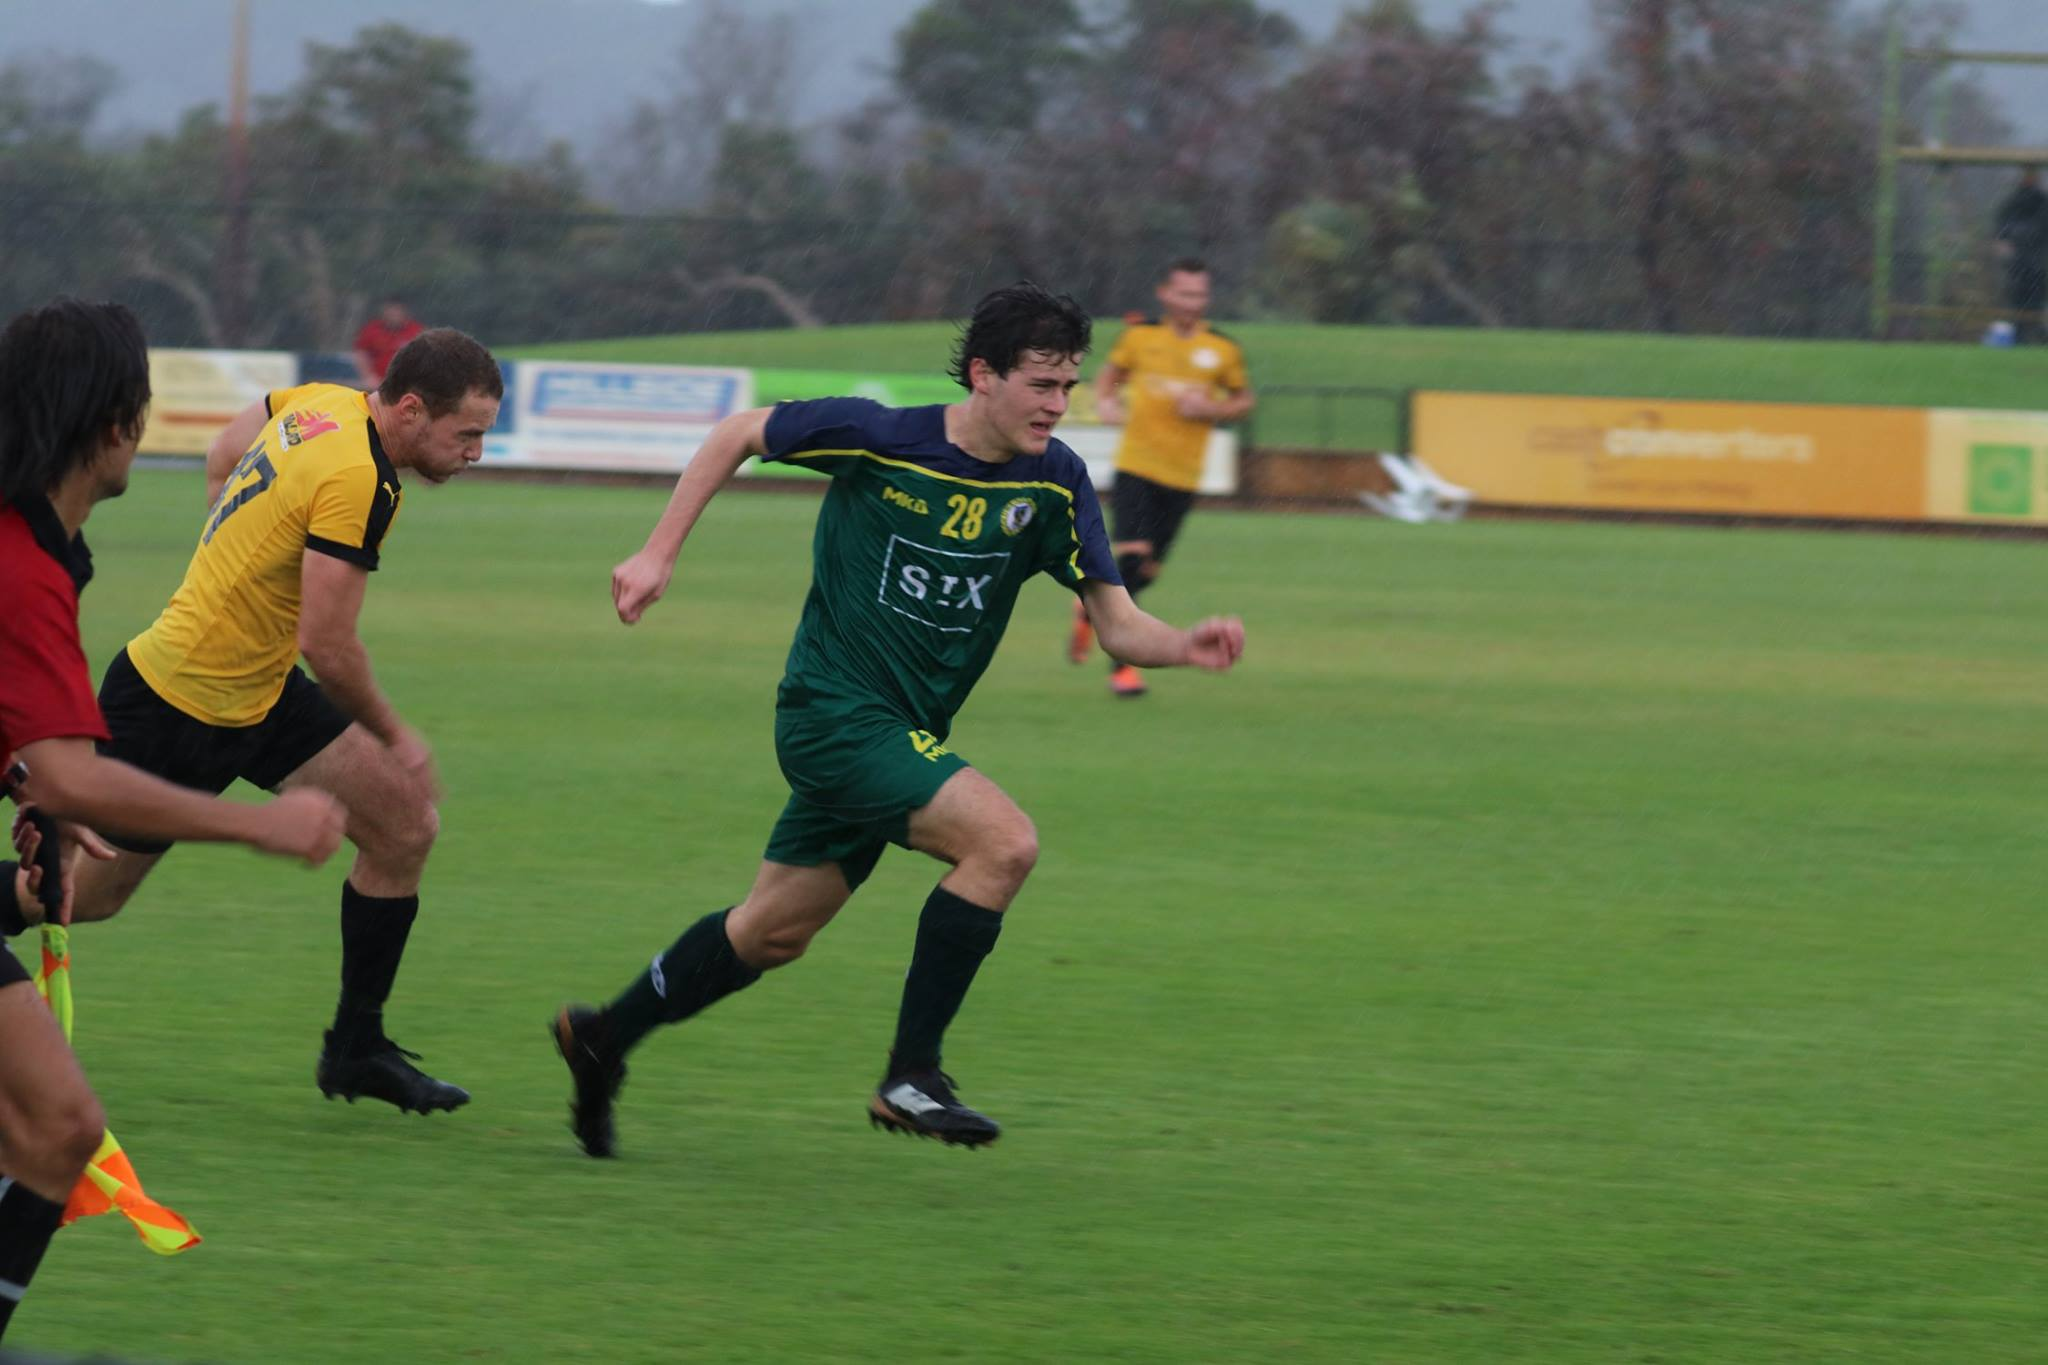 Sam Guthridge was superb at right-back in the win over his former side - Credit: Gabriele Maluga